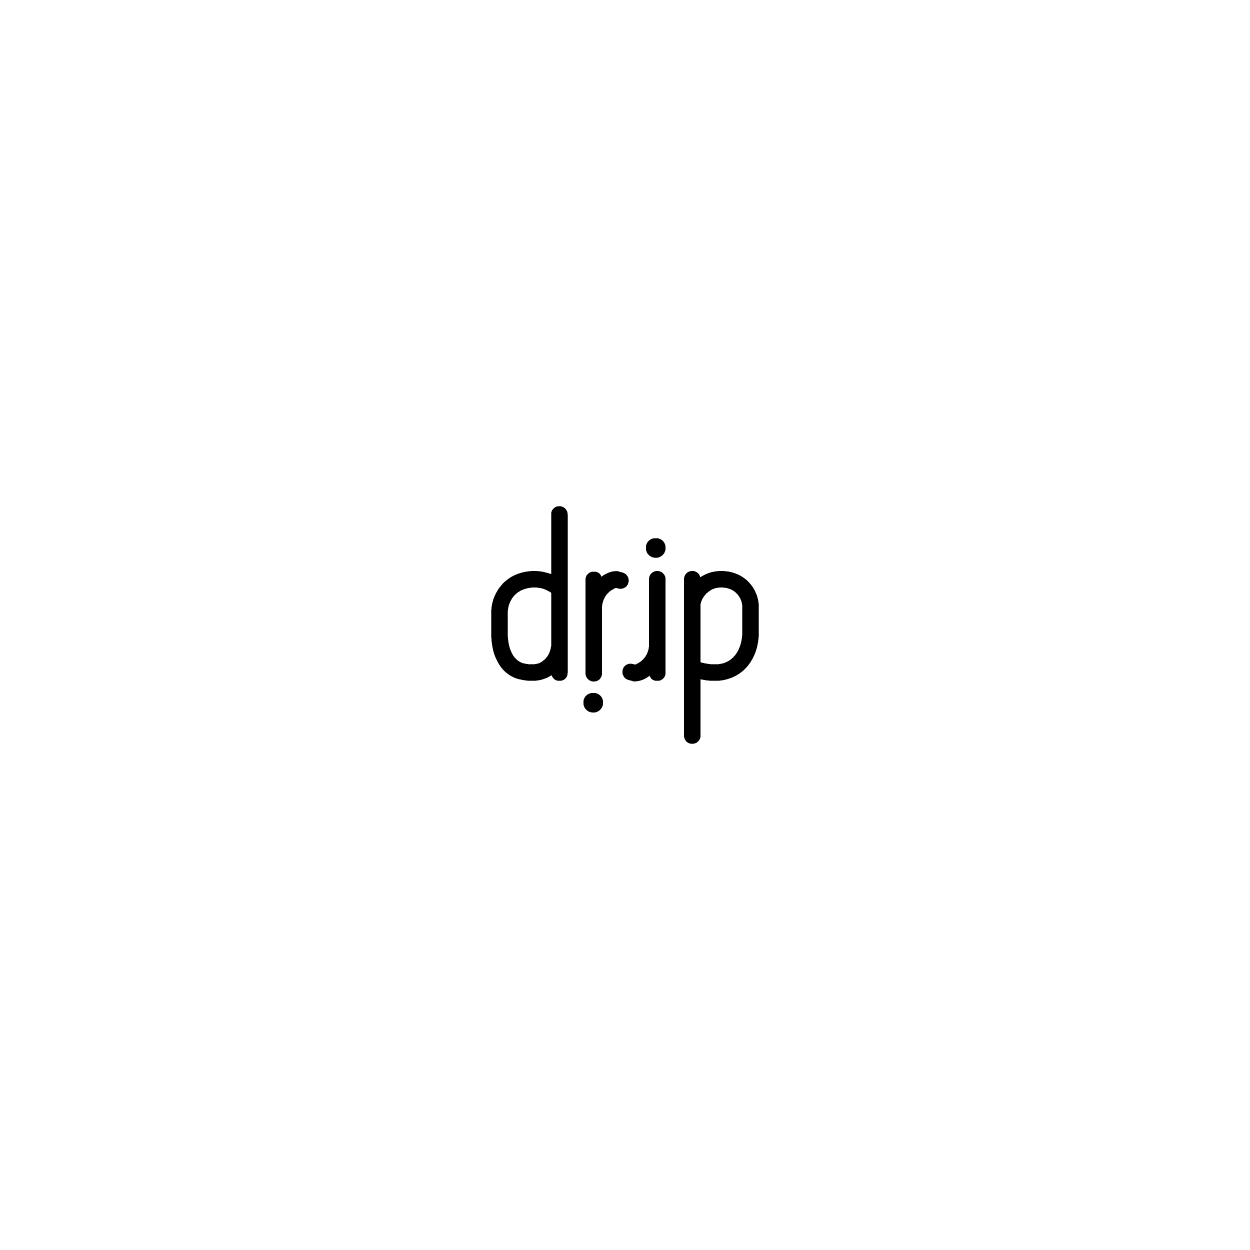 DS_Logos_1-01.png